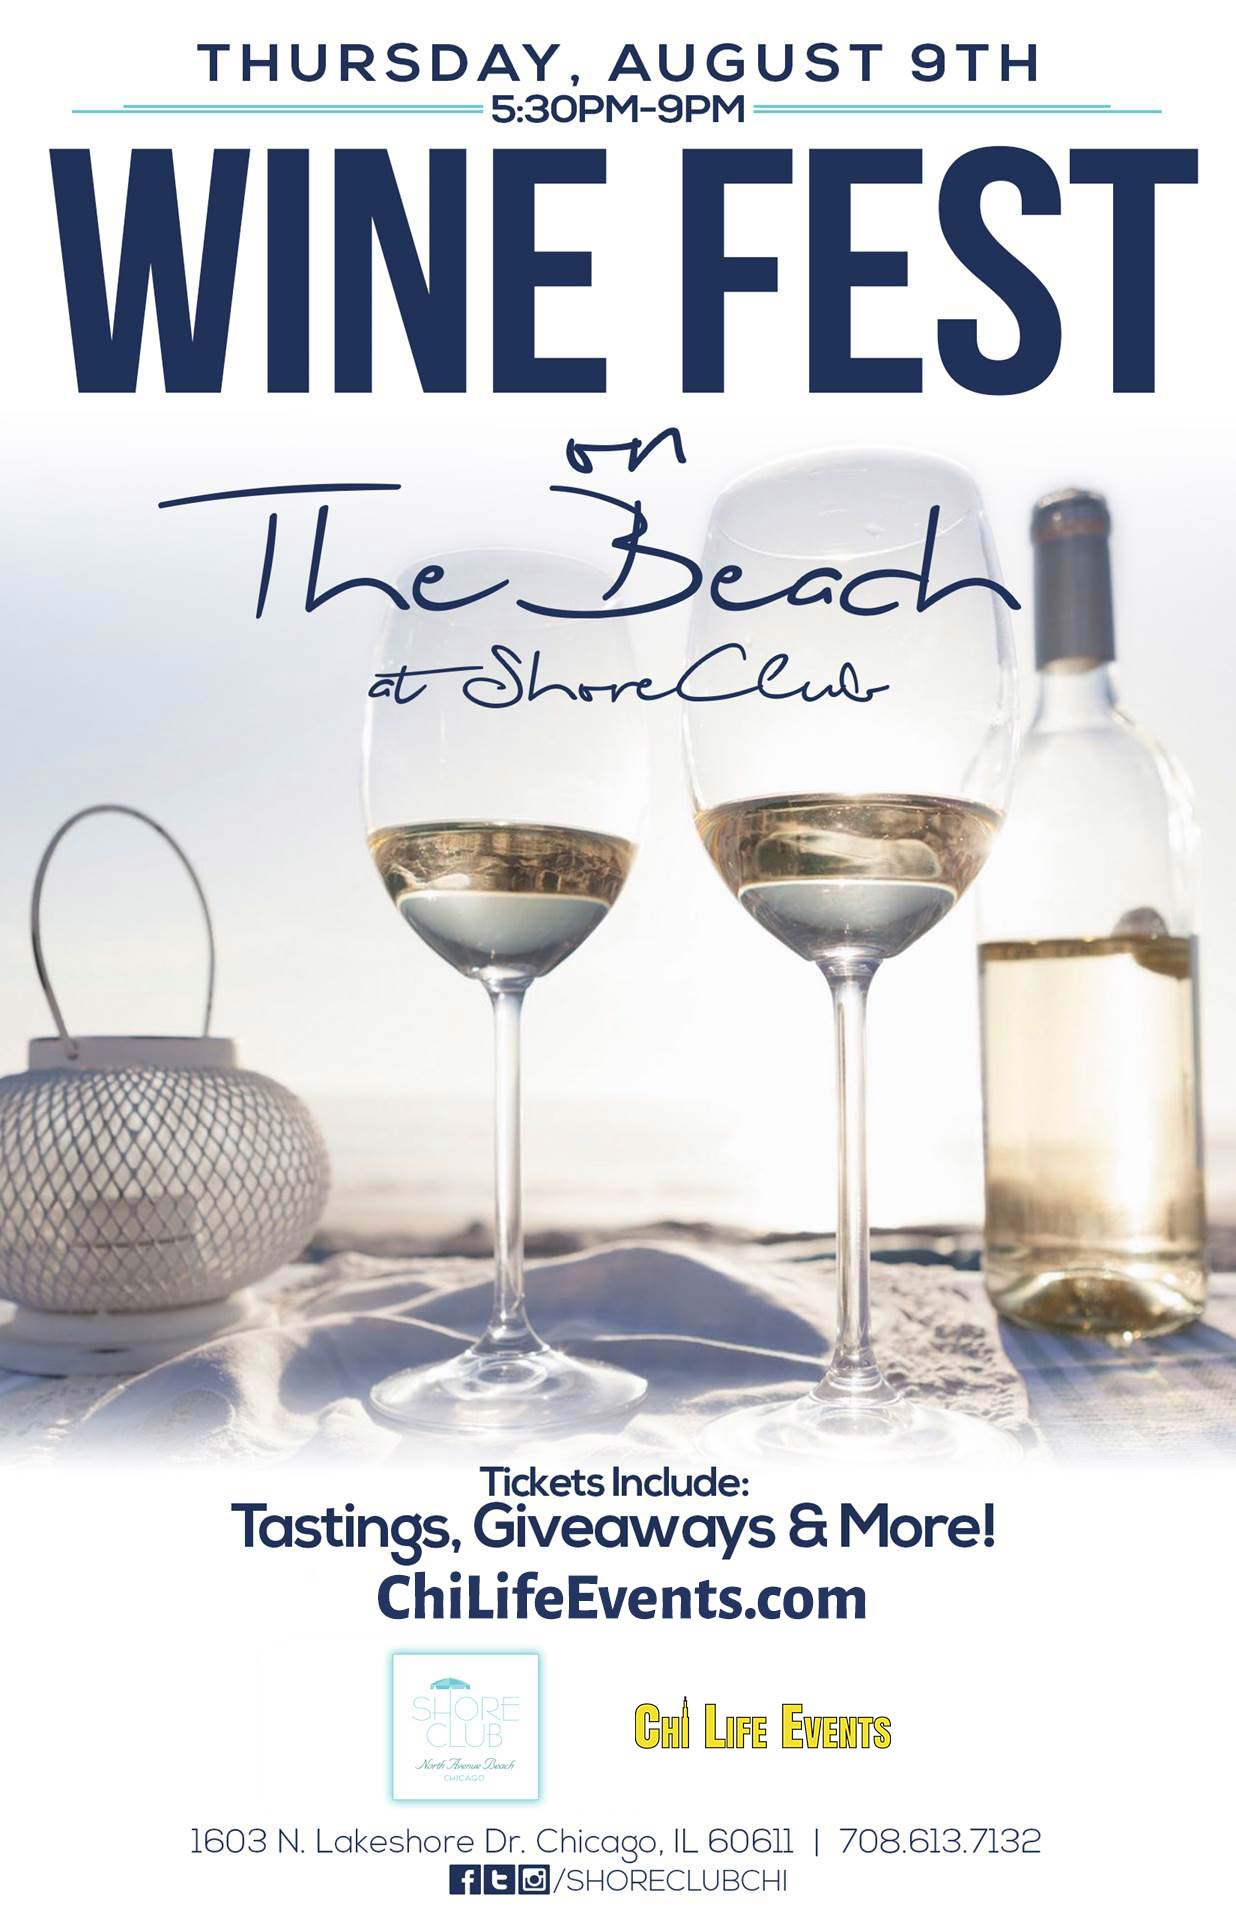 Wine Fest on the Beach Party at Shore Club Chicago - Tickets include wine tastings, giveaways & MORE!